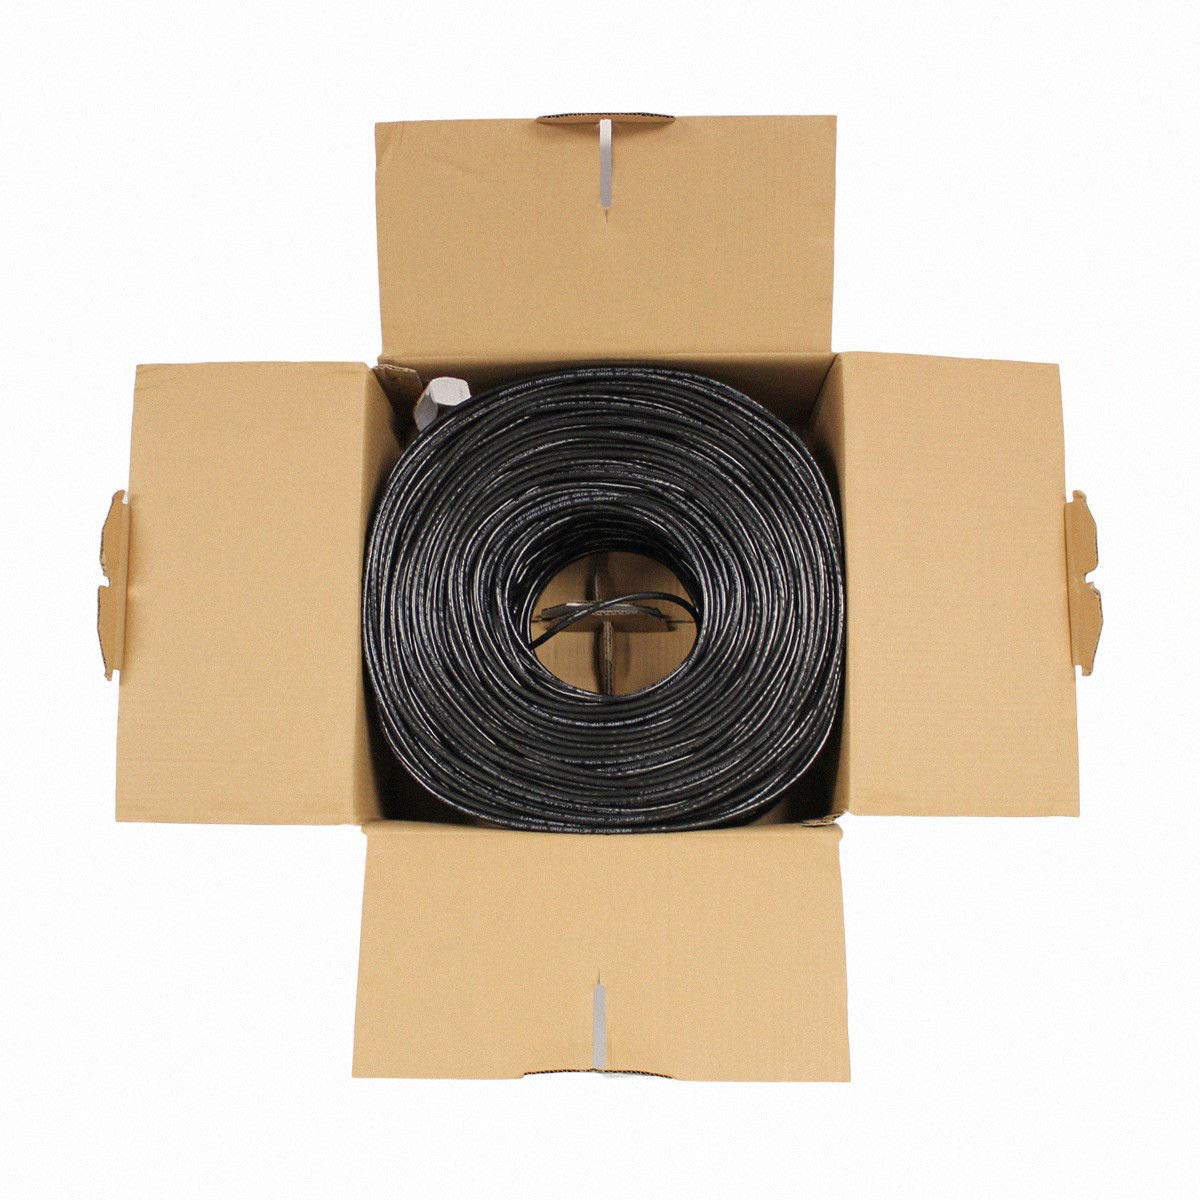 CCA Black Solid Bulk Ethernet Cable UTP 1000ft Unshielded Twisted Pair NavePoint CAT5e 24AWG 4 Pair